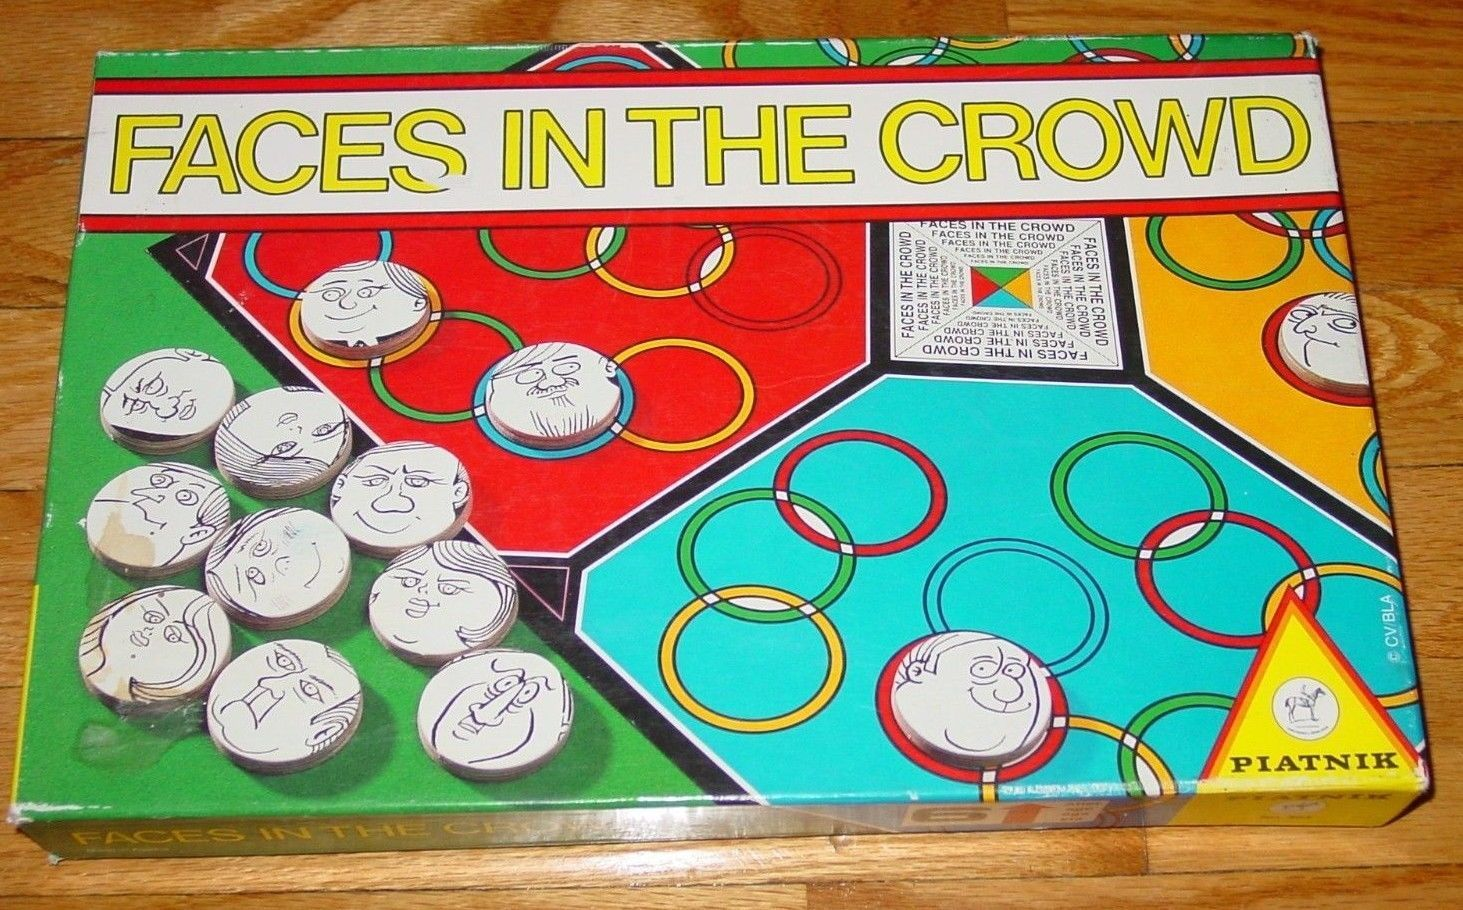 FACES IN THE CROWD GAME 1987 PIATNIK #403 COMPLETE LIGHTLY PLAYED - $15.00